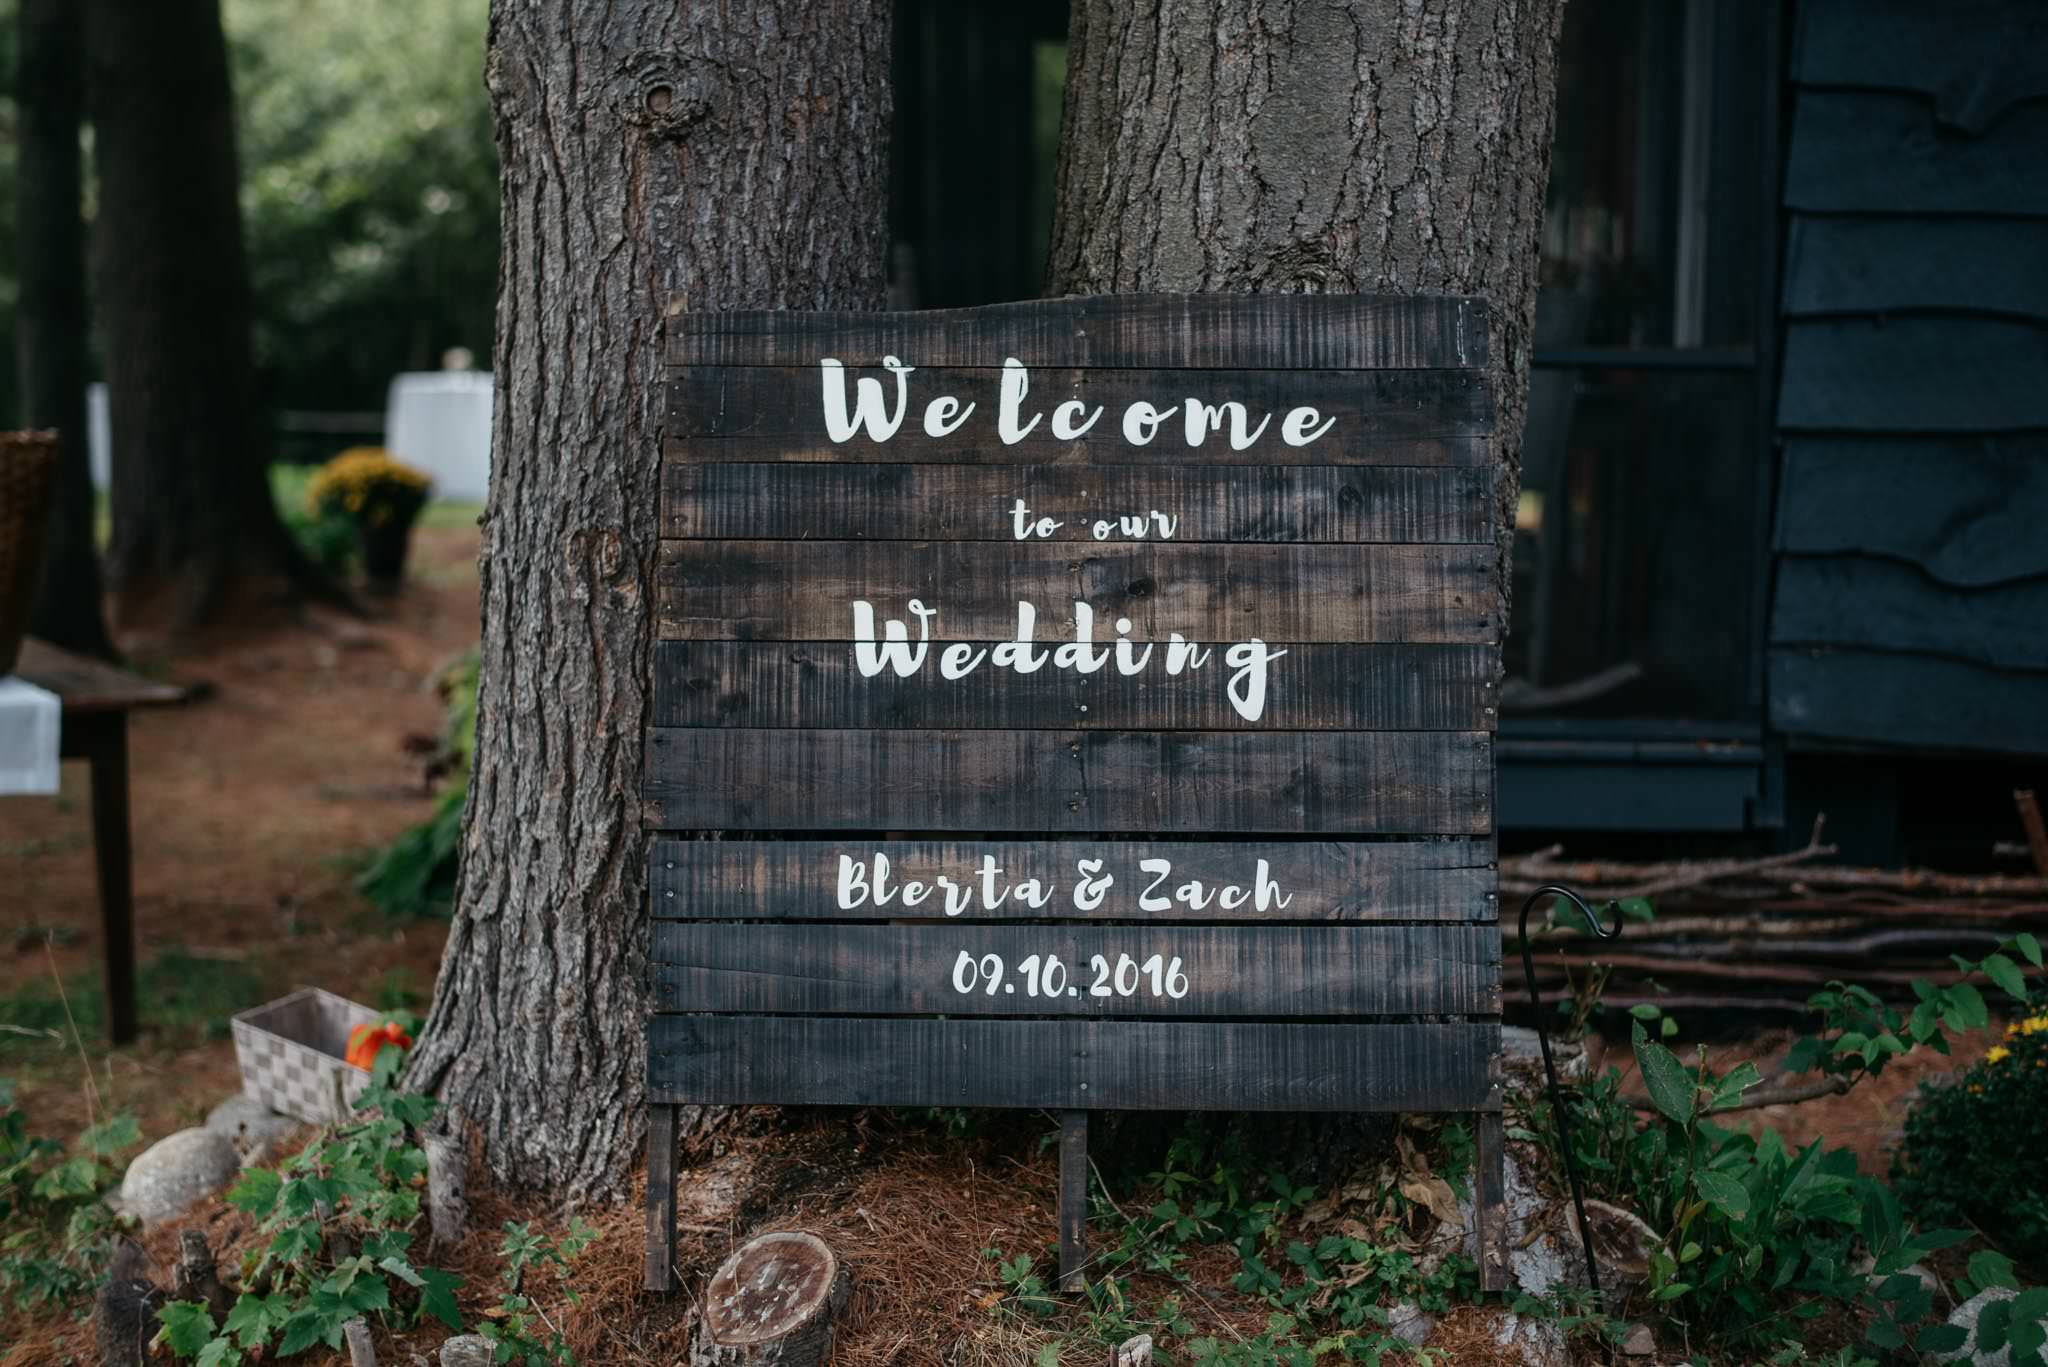 - Zack and Blerta were married in September at the edge of Wintergreen Lake just before sunset. They took a private row down the lake before returning to celebrate with their friends and family.Later that evening,guests emerged from beneath the tent to watch a fireworks display under the stars.